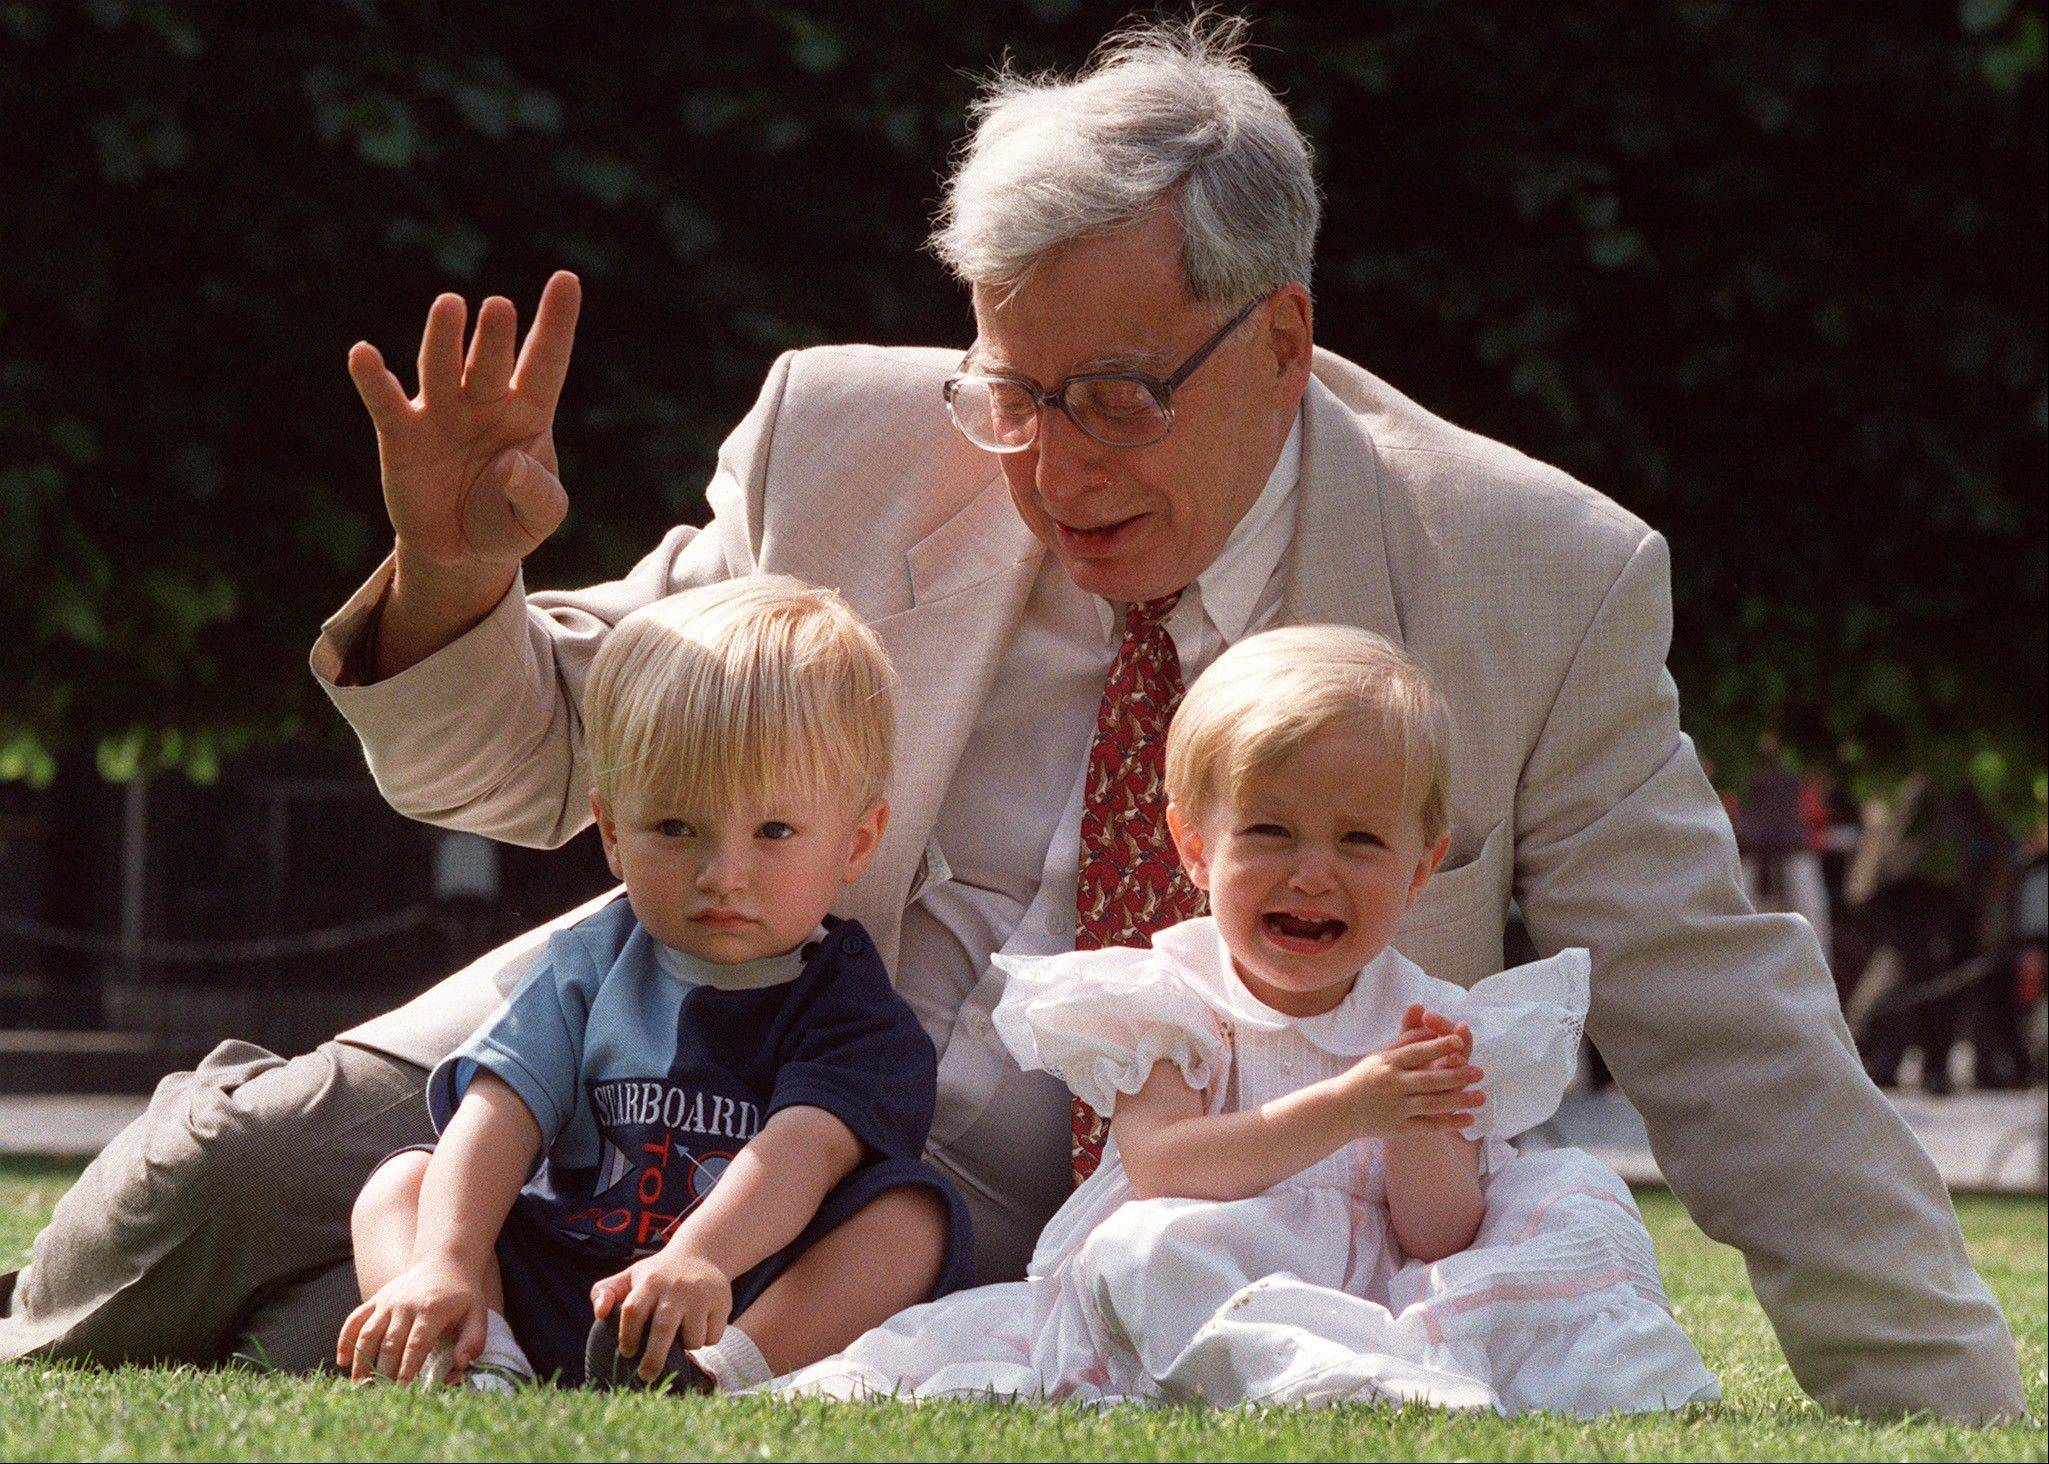 The British pioneer of IVF treatment, Professor Robert Edwards, sits with two of his �test-tube-babies� in 1998. The Nobel Prize winner for medicine, Edwards has died at age 87.